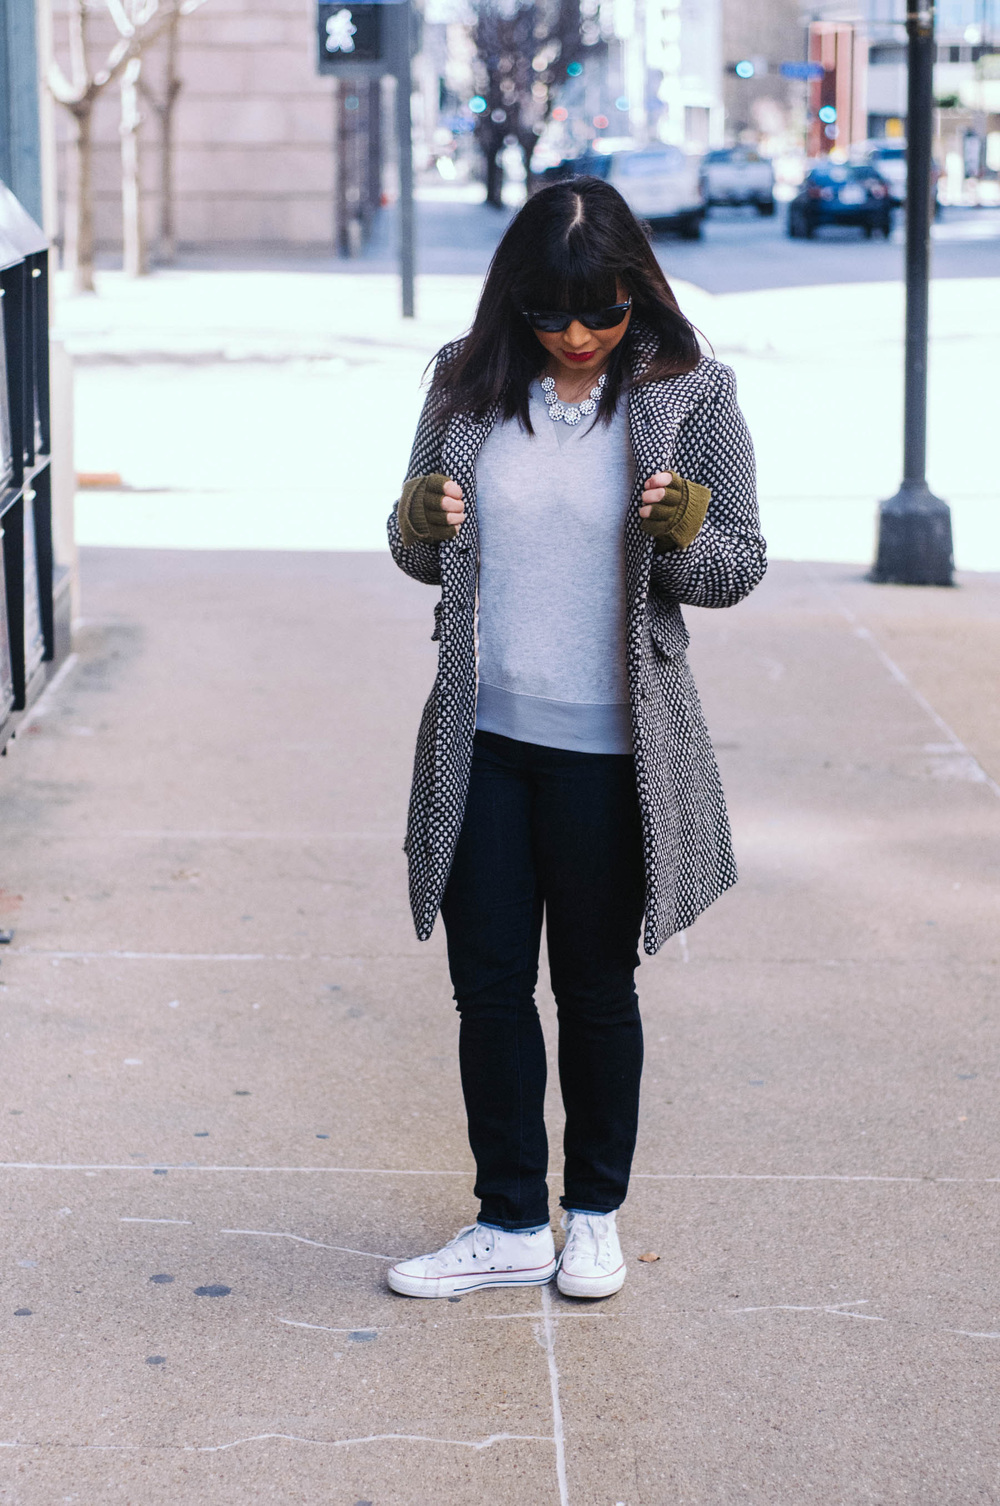 Coat: Coffeeshop NYC (similar here) | Sweater: Mossimo | Jeans: Madewell | Sneakers: Converse | Gloves: J.Crew (similar here) | Necklace: Forever 21 | Sunglasses: RayBan